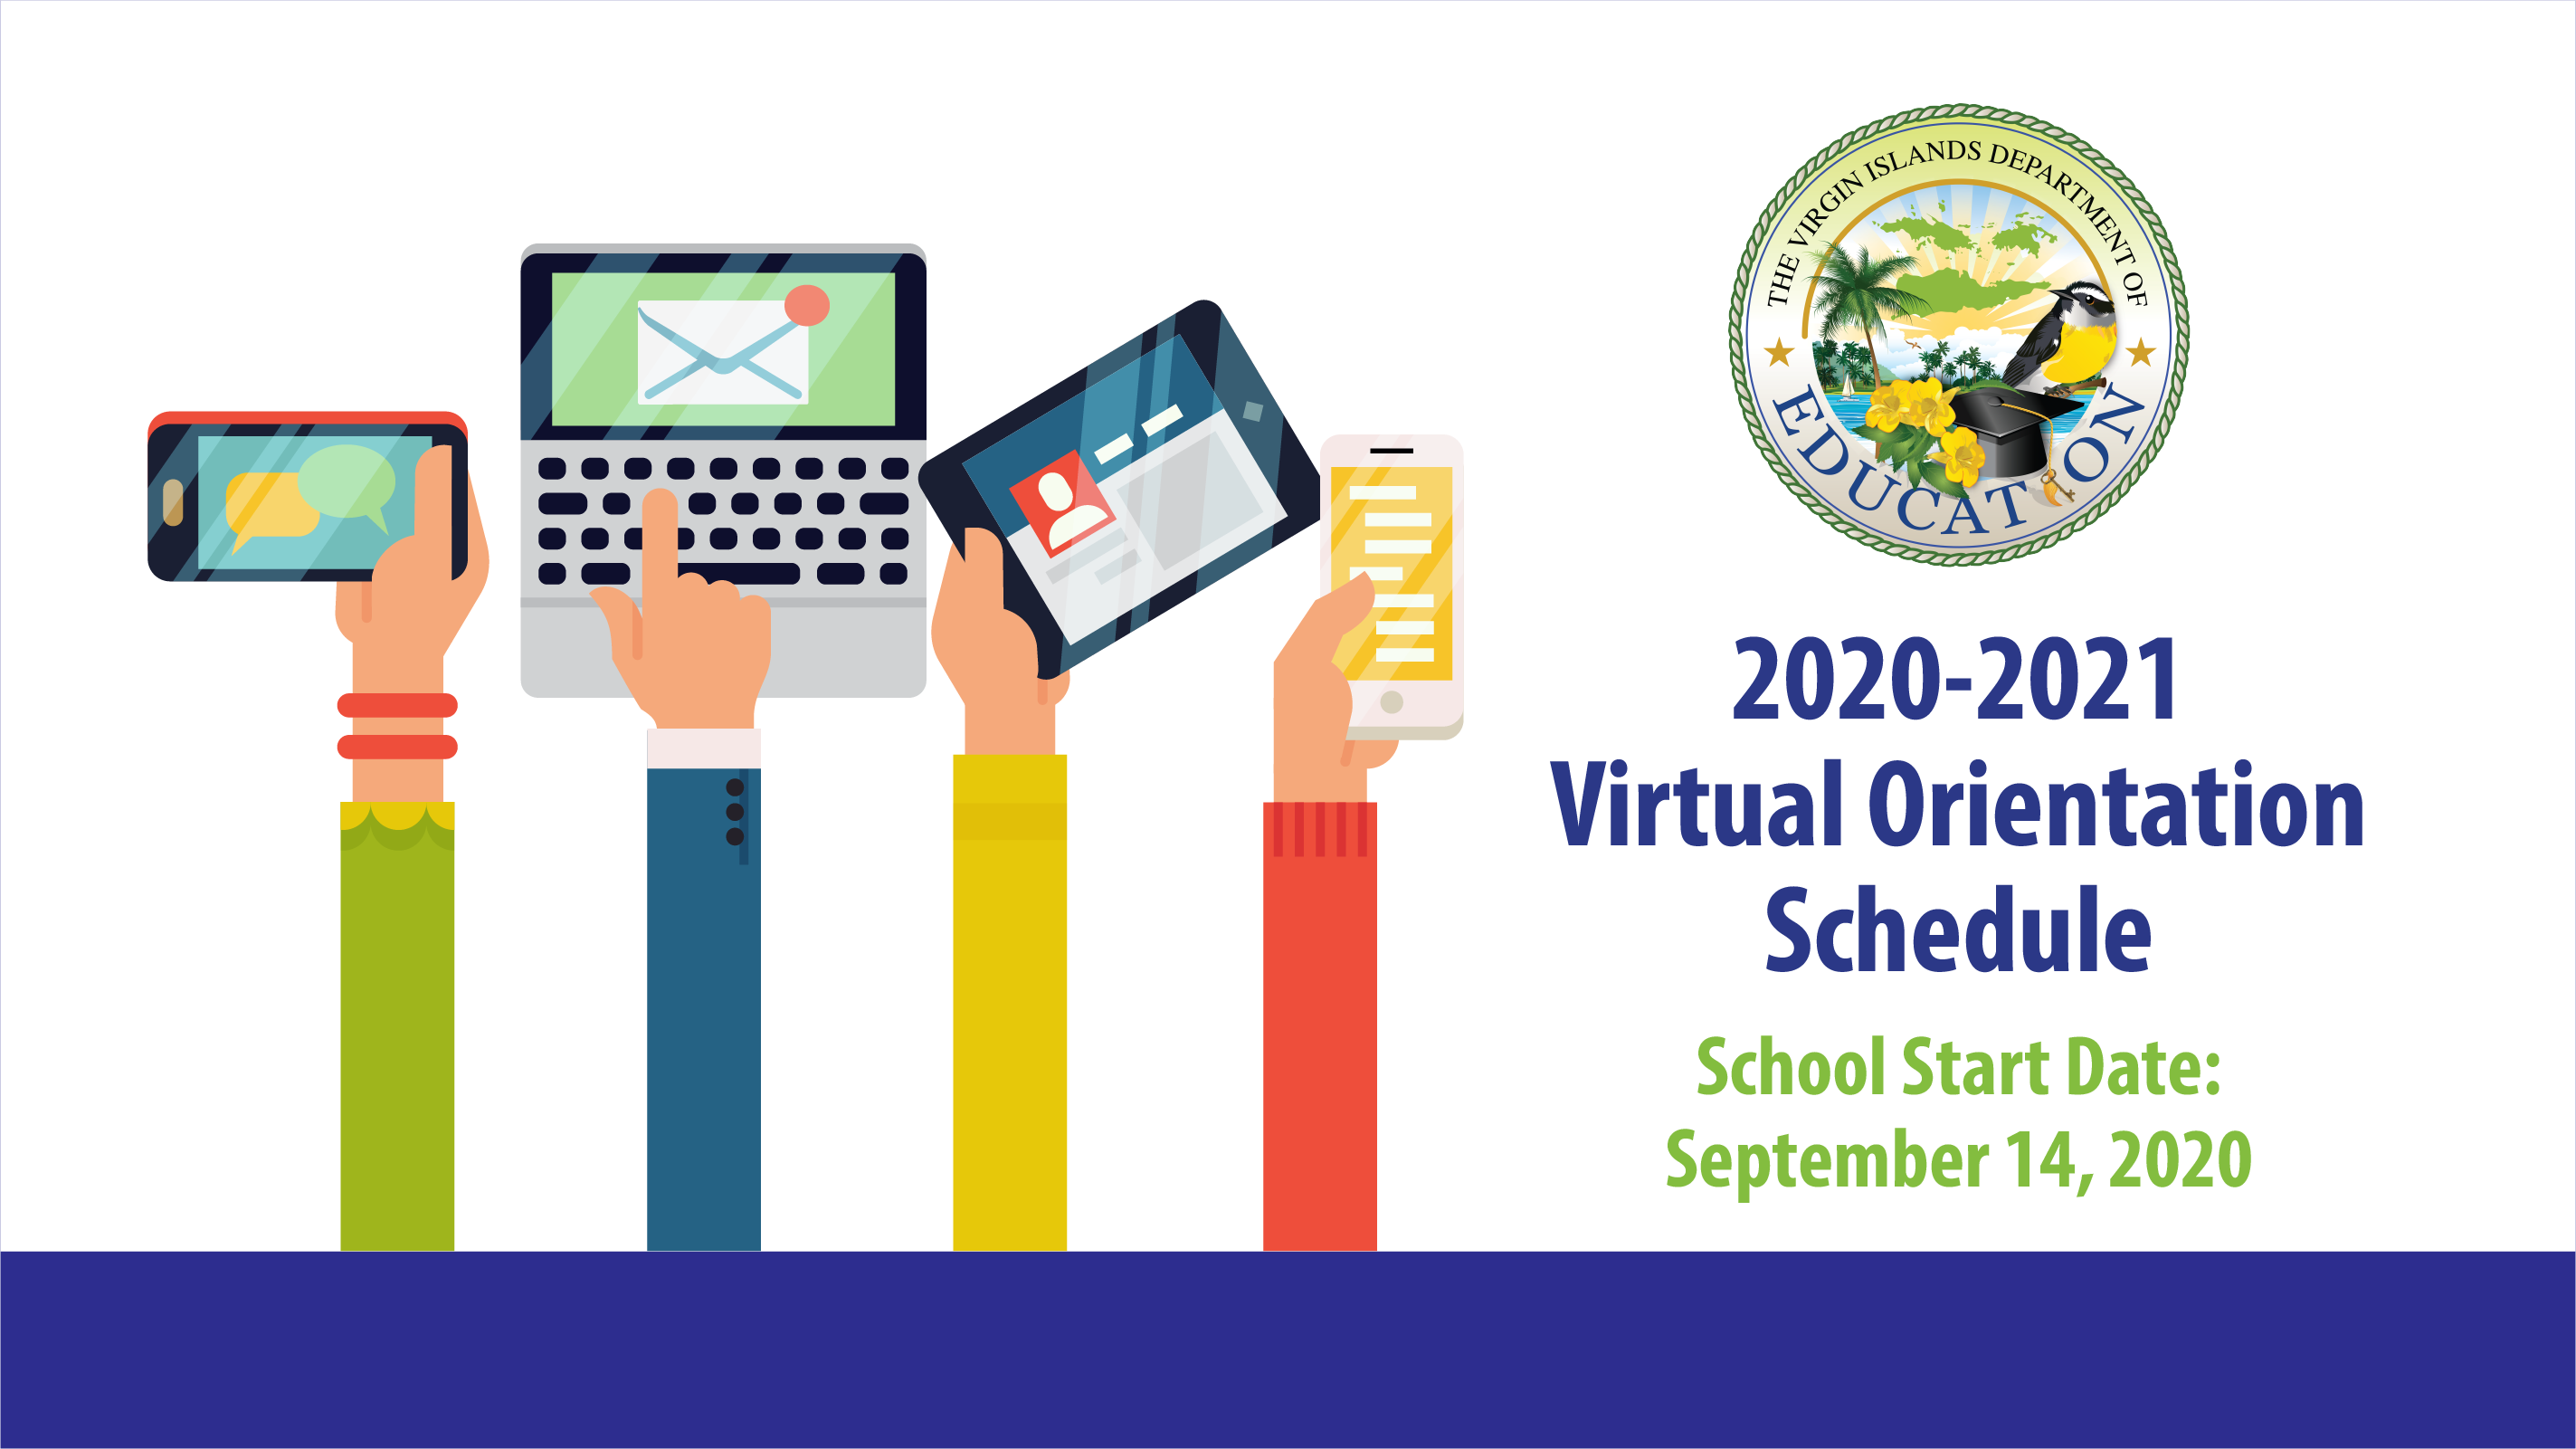 2020-2021 Virtual Orientation Schedules and more